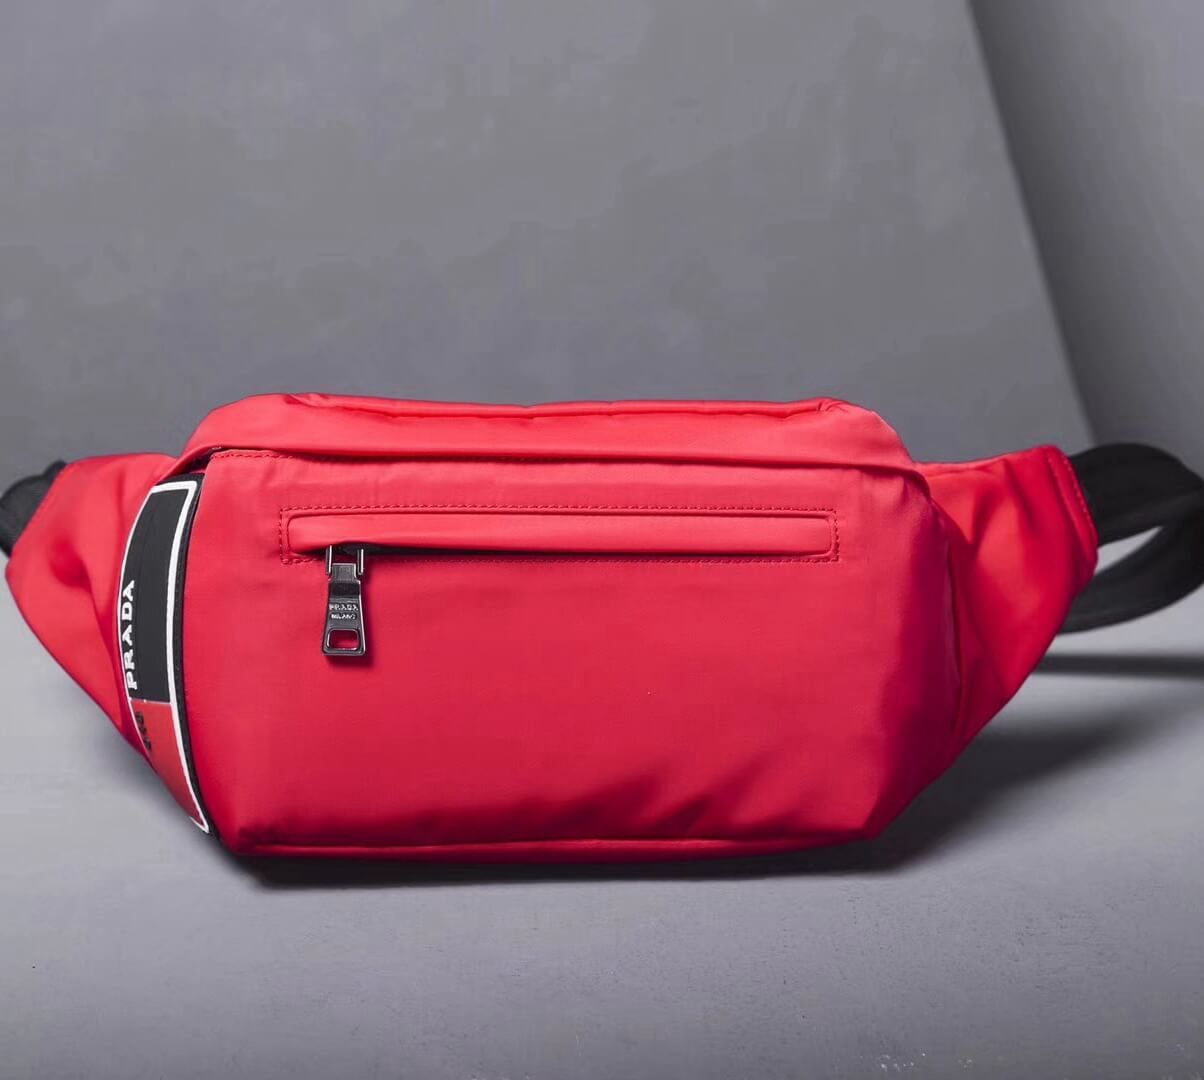 dbcdb6b7e00e Prada Nylon Small Belt Bag 2VL008 Red 2018